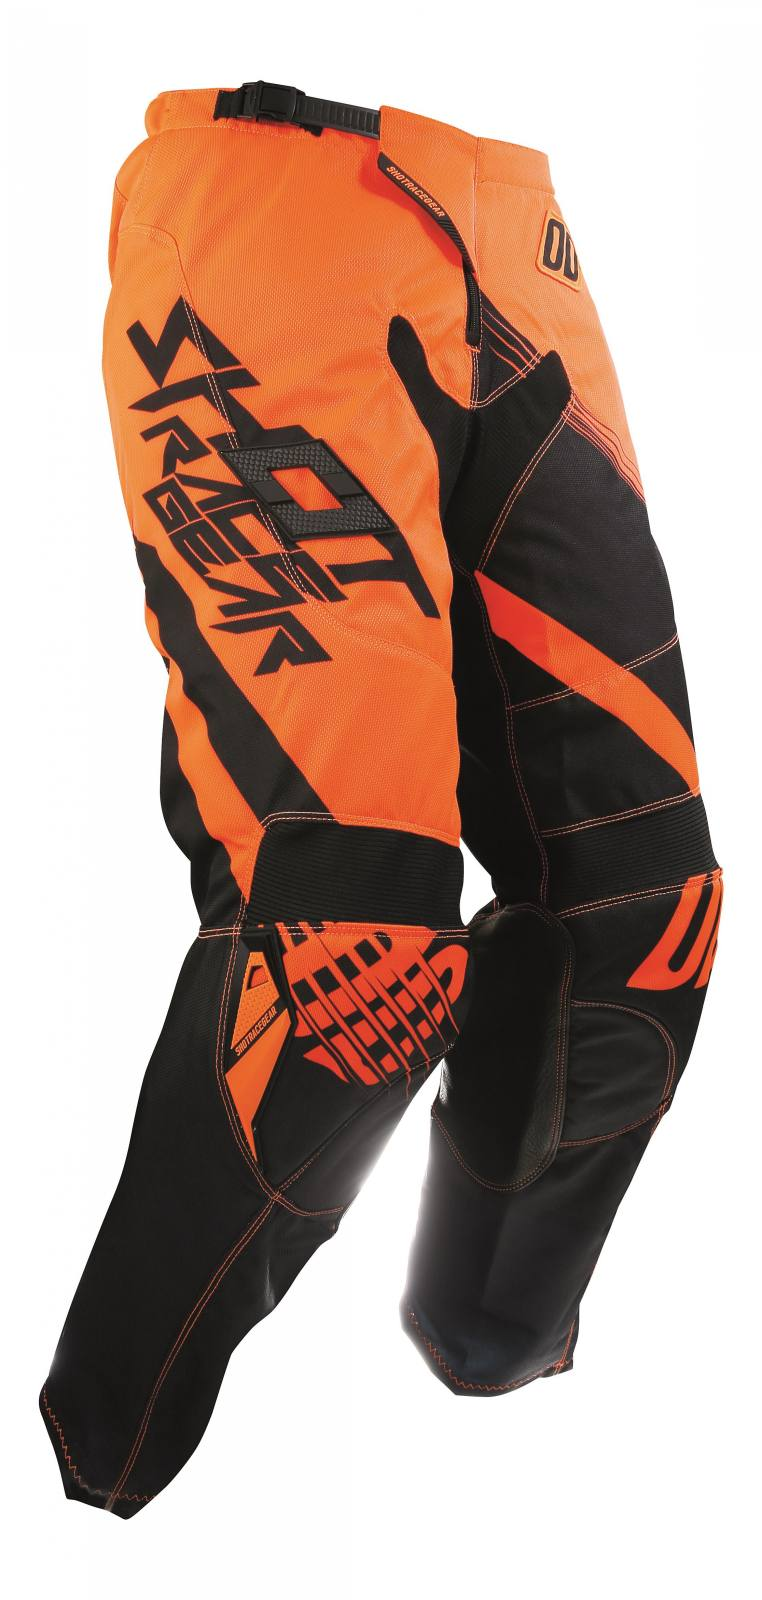 SHOT RACE GEAR 2017 KALHOTY CONTACT CLAW NEON ORANGE